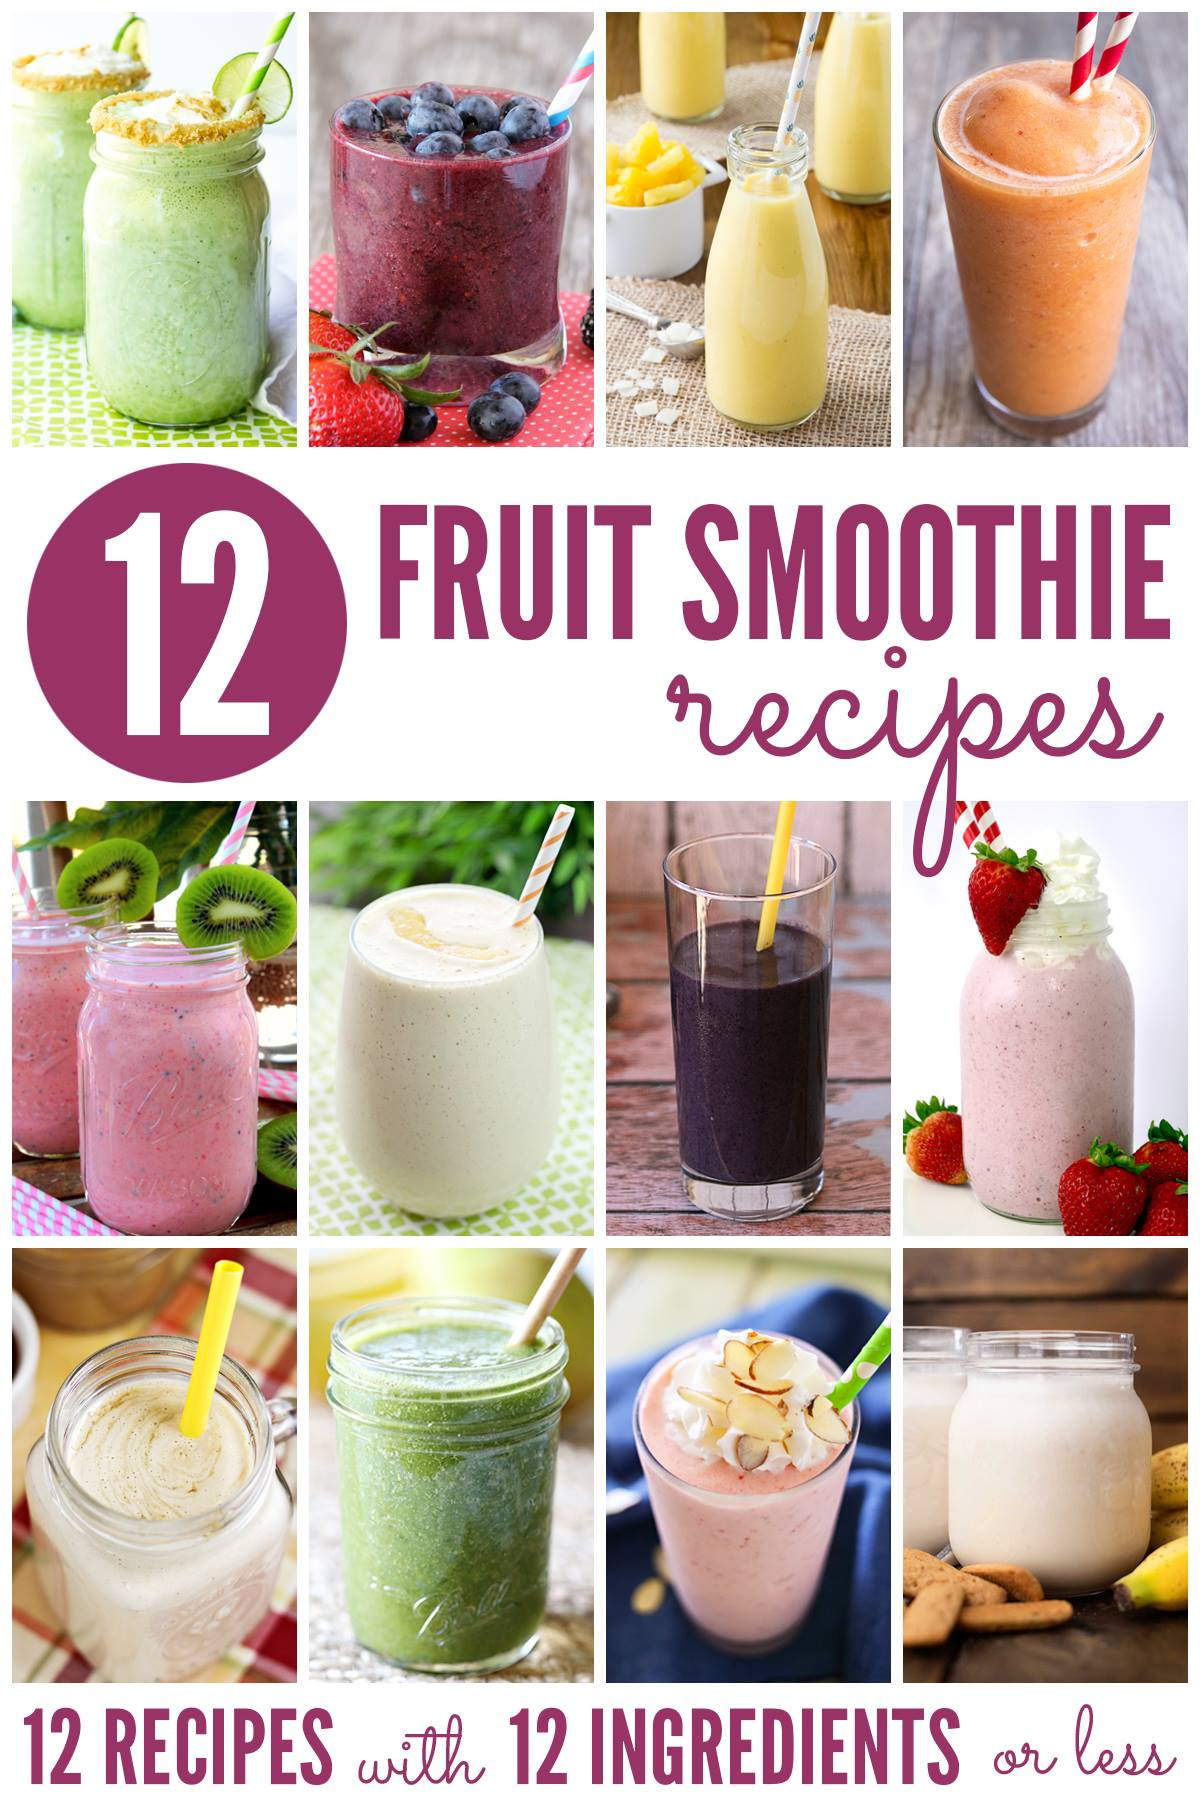 Such a great list of delicious Fruit Smoothie Recipes!